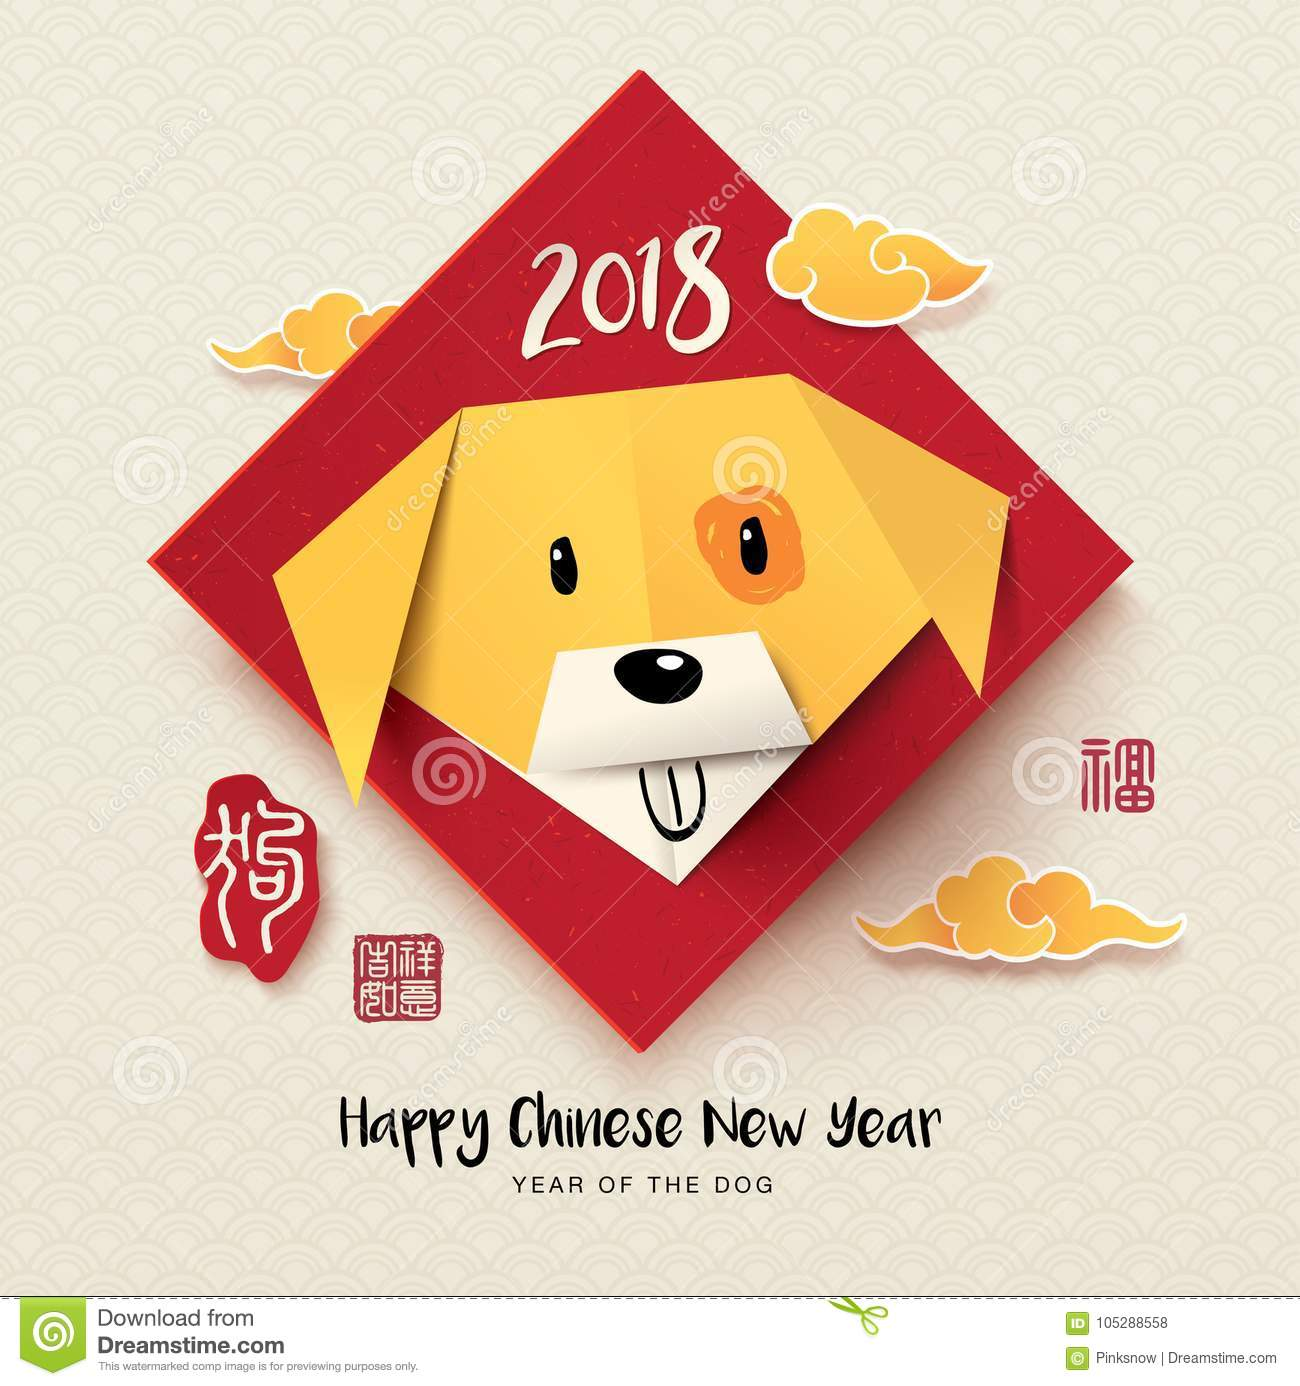 2018 chinese new year greeting card design with origami dog stock 2018 chinese new year greeting card design with origami dog jeuxipadfo Gallery